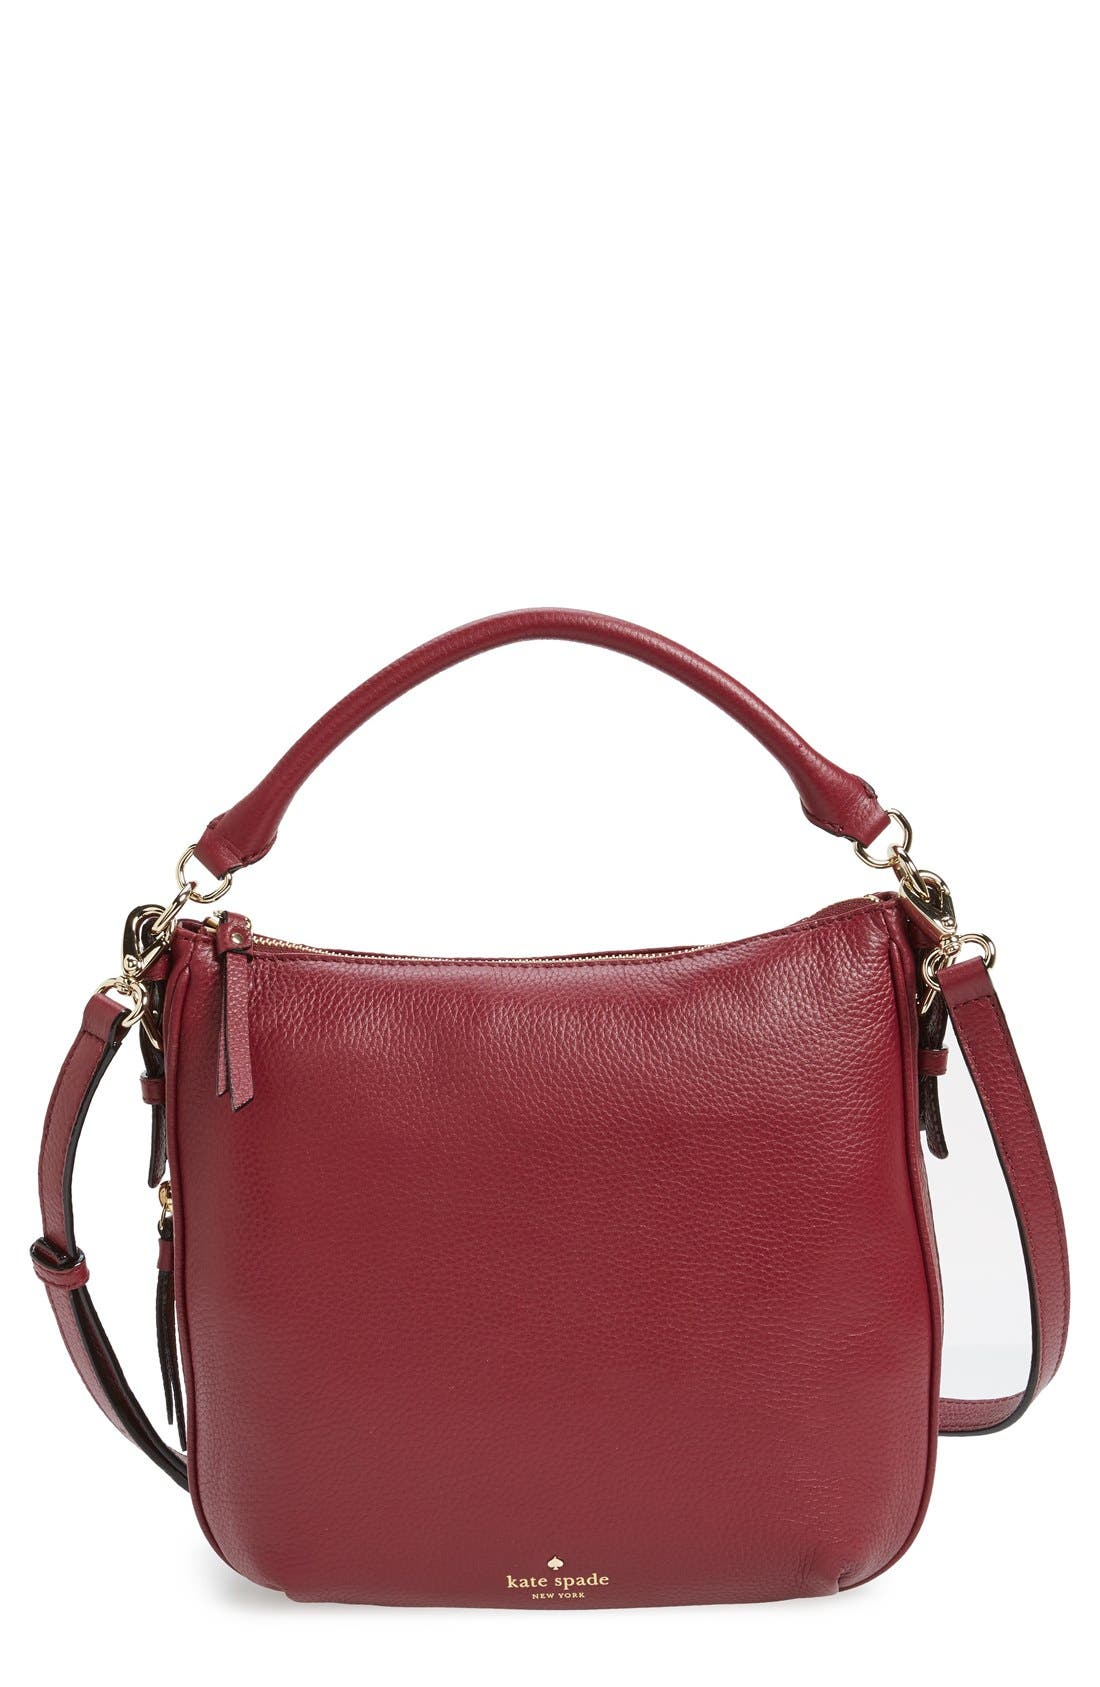 Main Image - kate spade new york 'cobble hill - small ella' leather satchel